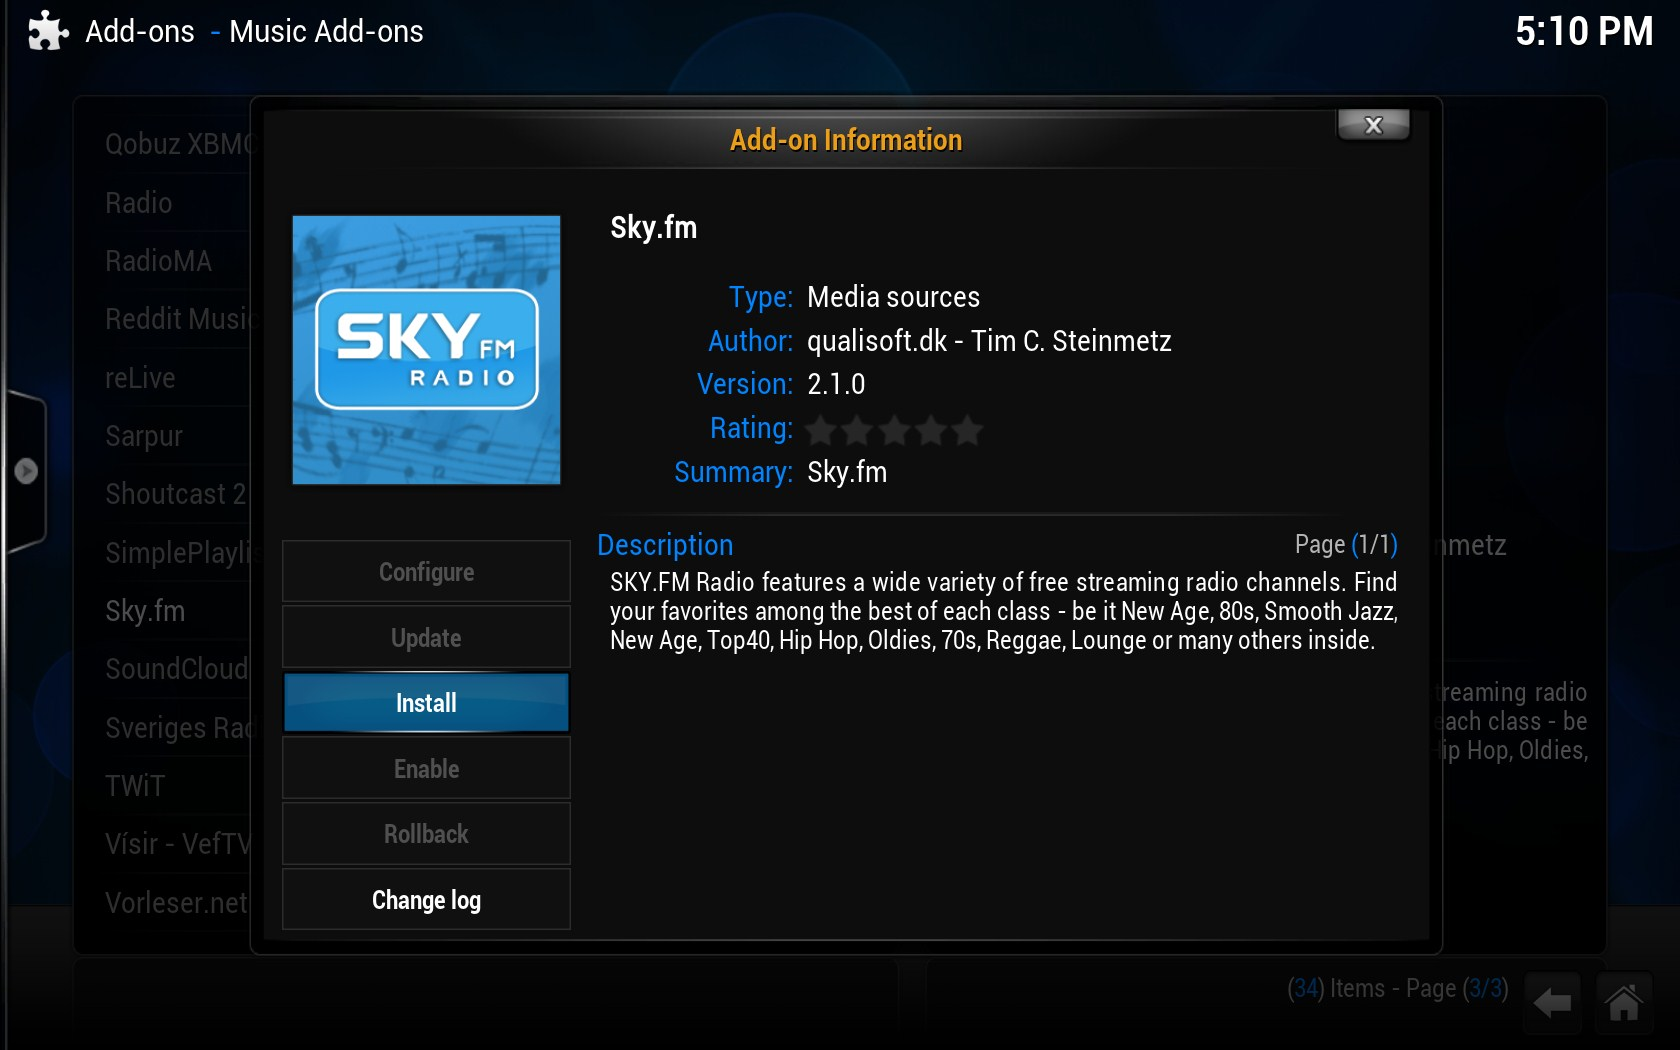 XBMC Media Center Download para Windows em Português Grátis